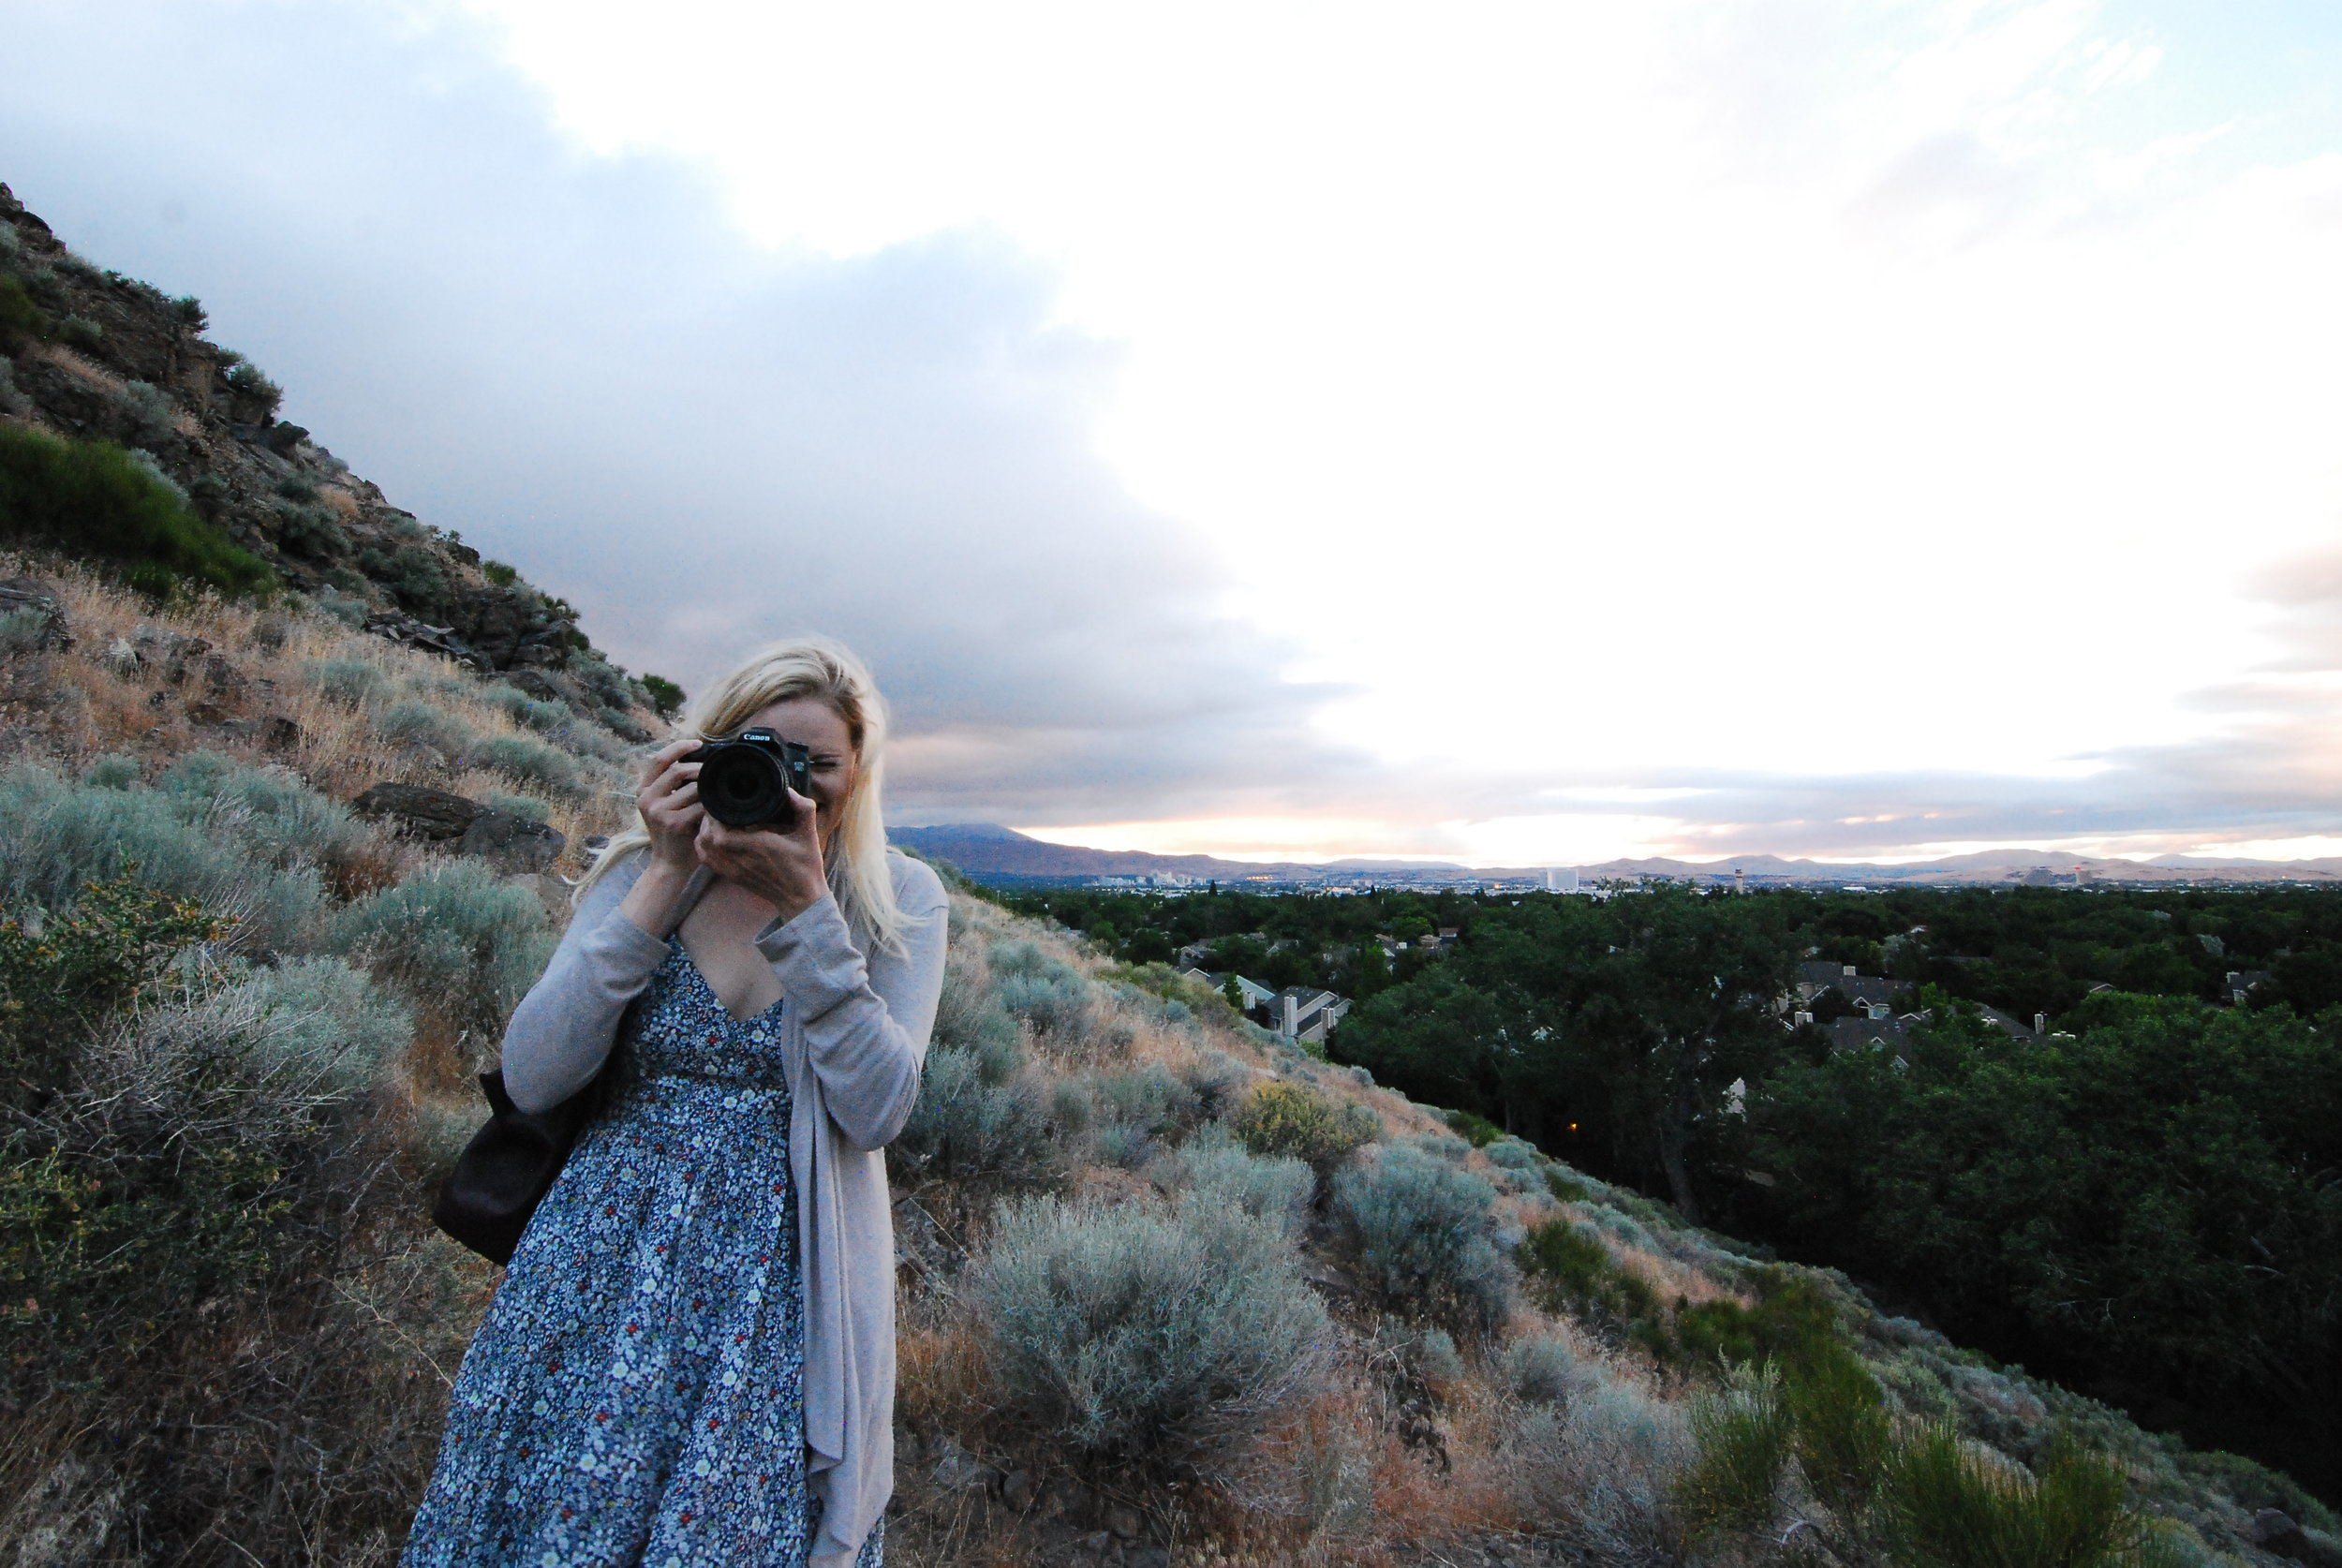 Lifestyle and travel blogger Bri Sul models an adorable J Crew floral dress in Reno, Nevada.